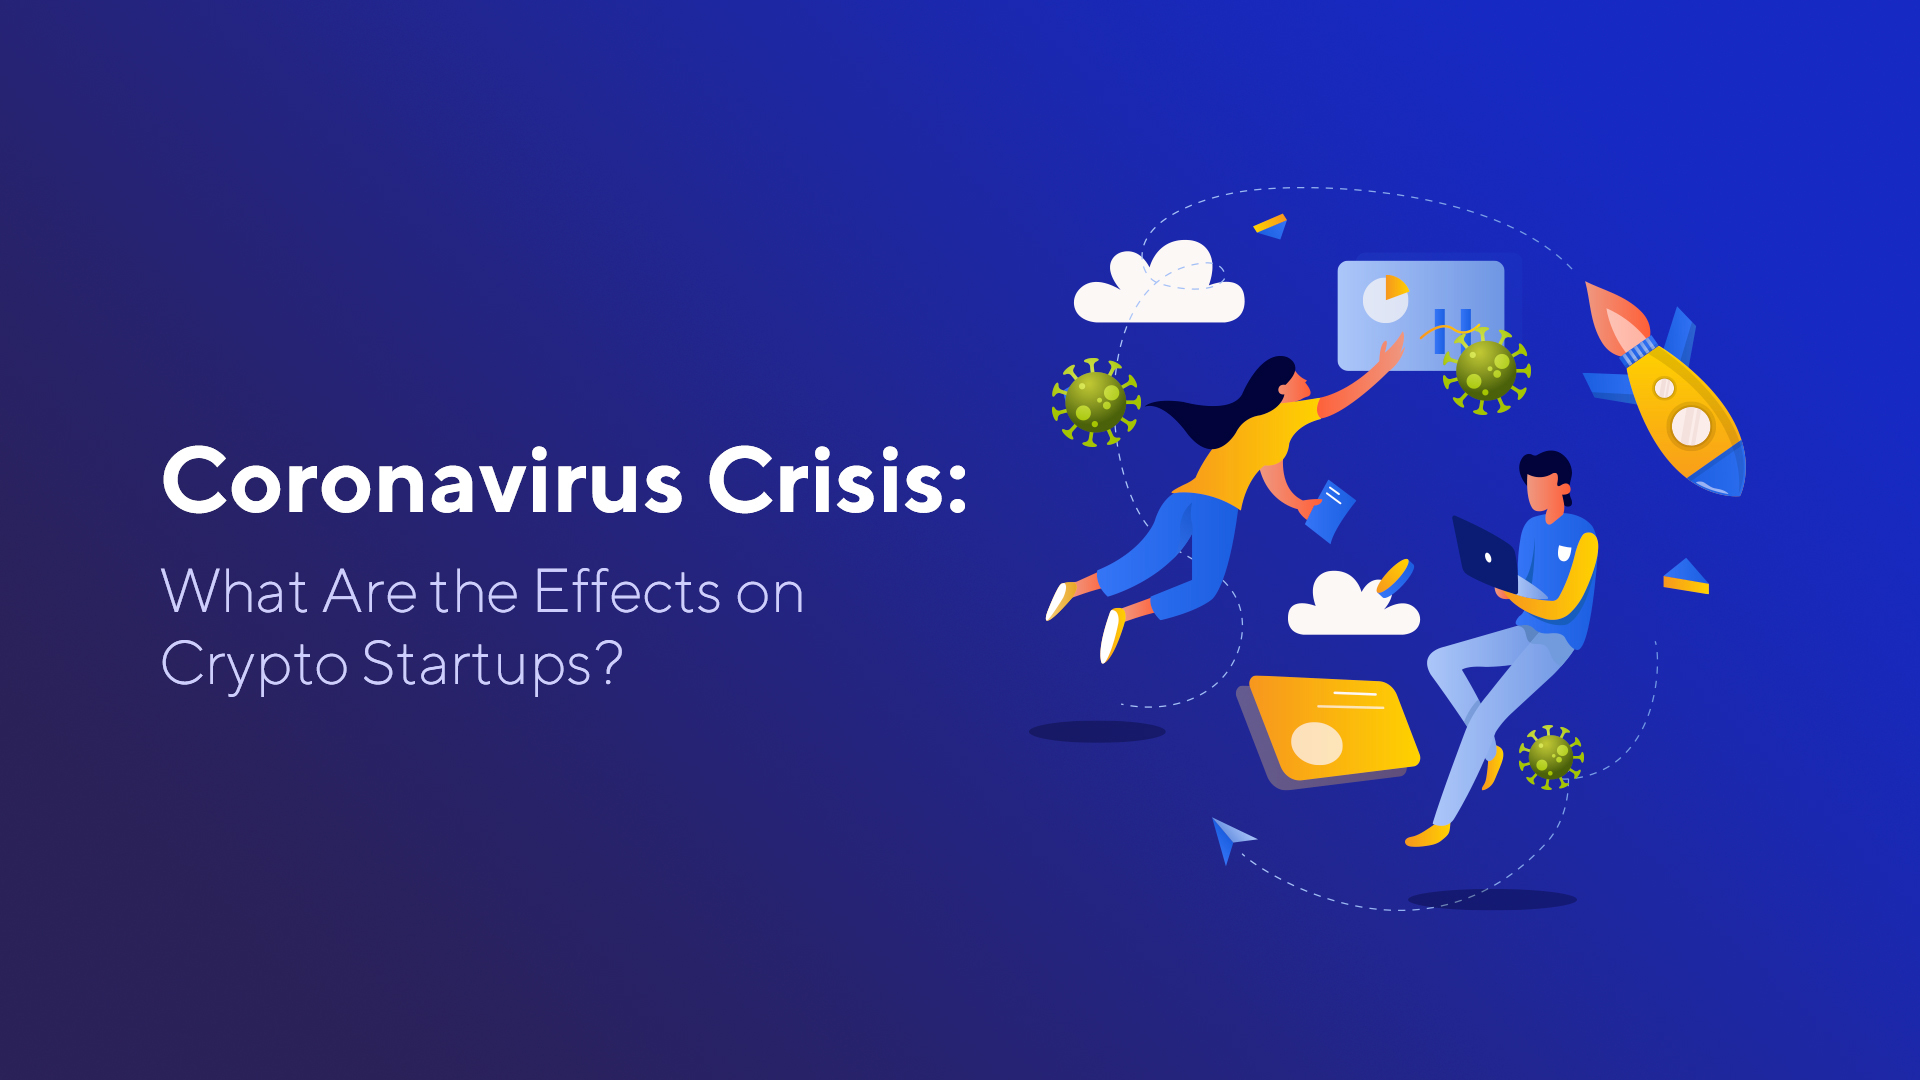 Coronavirus Crisis: What Are the Effects on Crypto Startups?